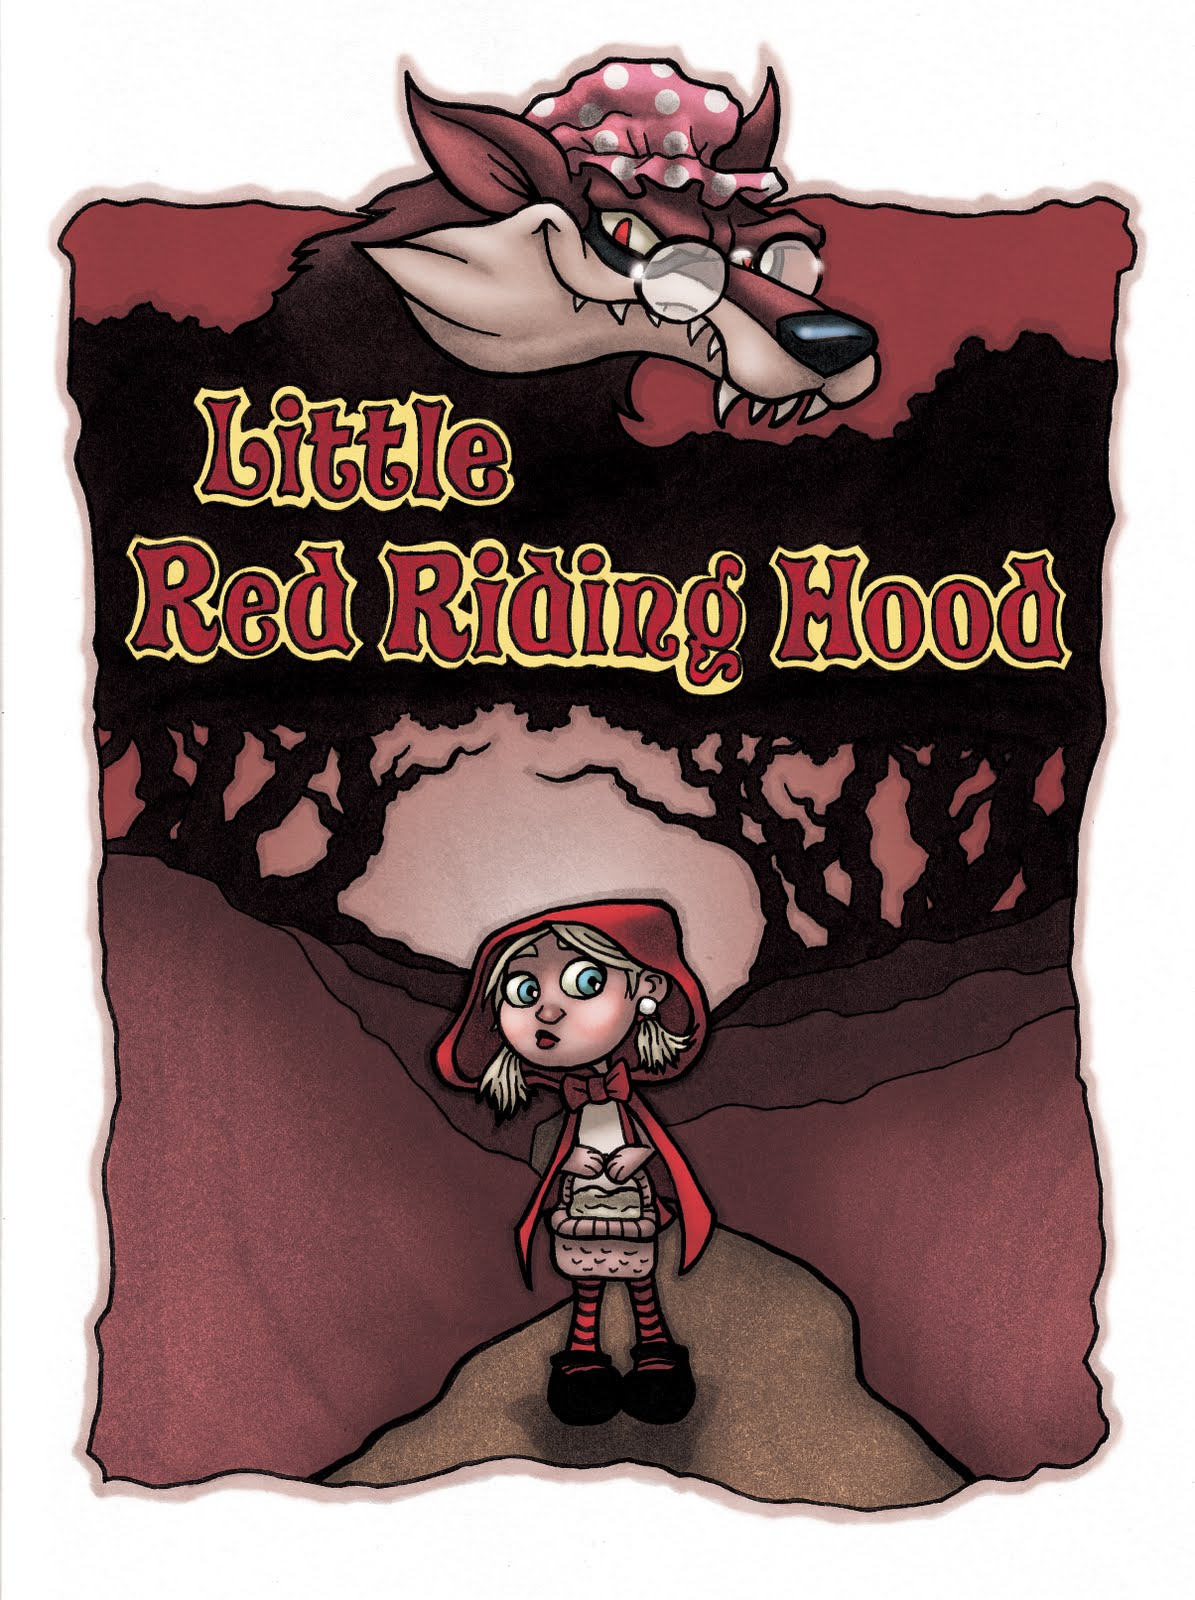 lil red riding hoodlumtwisted fairy tale essay Little red capall too often we see fairy tales depicting one-dimensional characters put in difficult situations little red cap is no exception, especially when looking at gender roles sexually innocent and unknowing of the world, little red cap can be unsuitably.